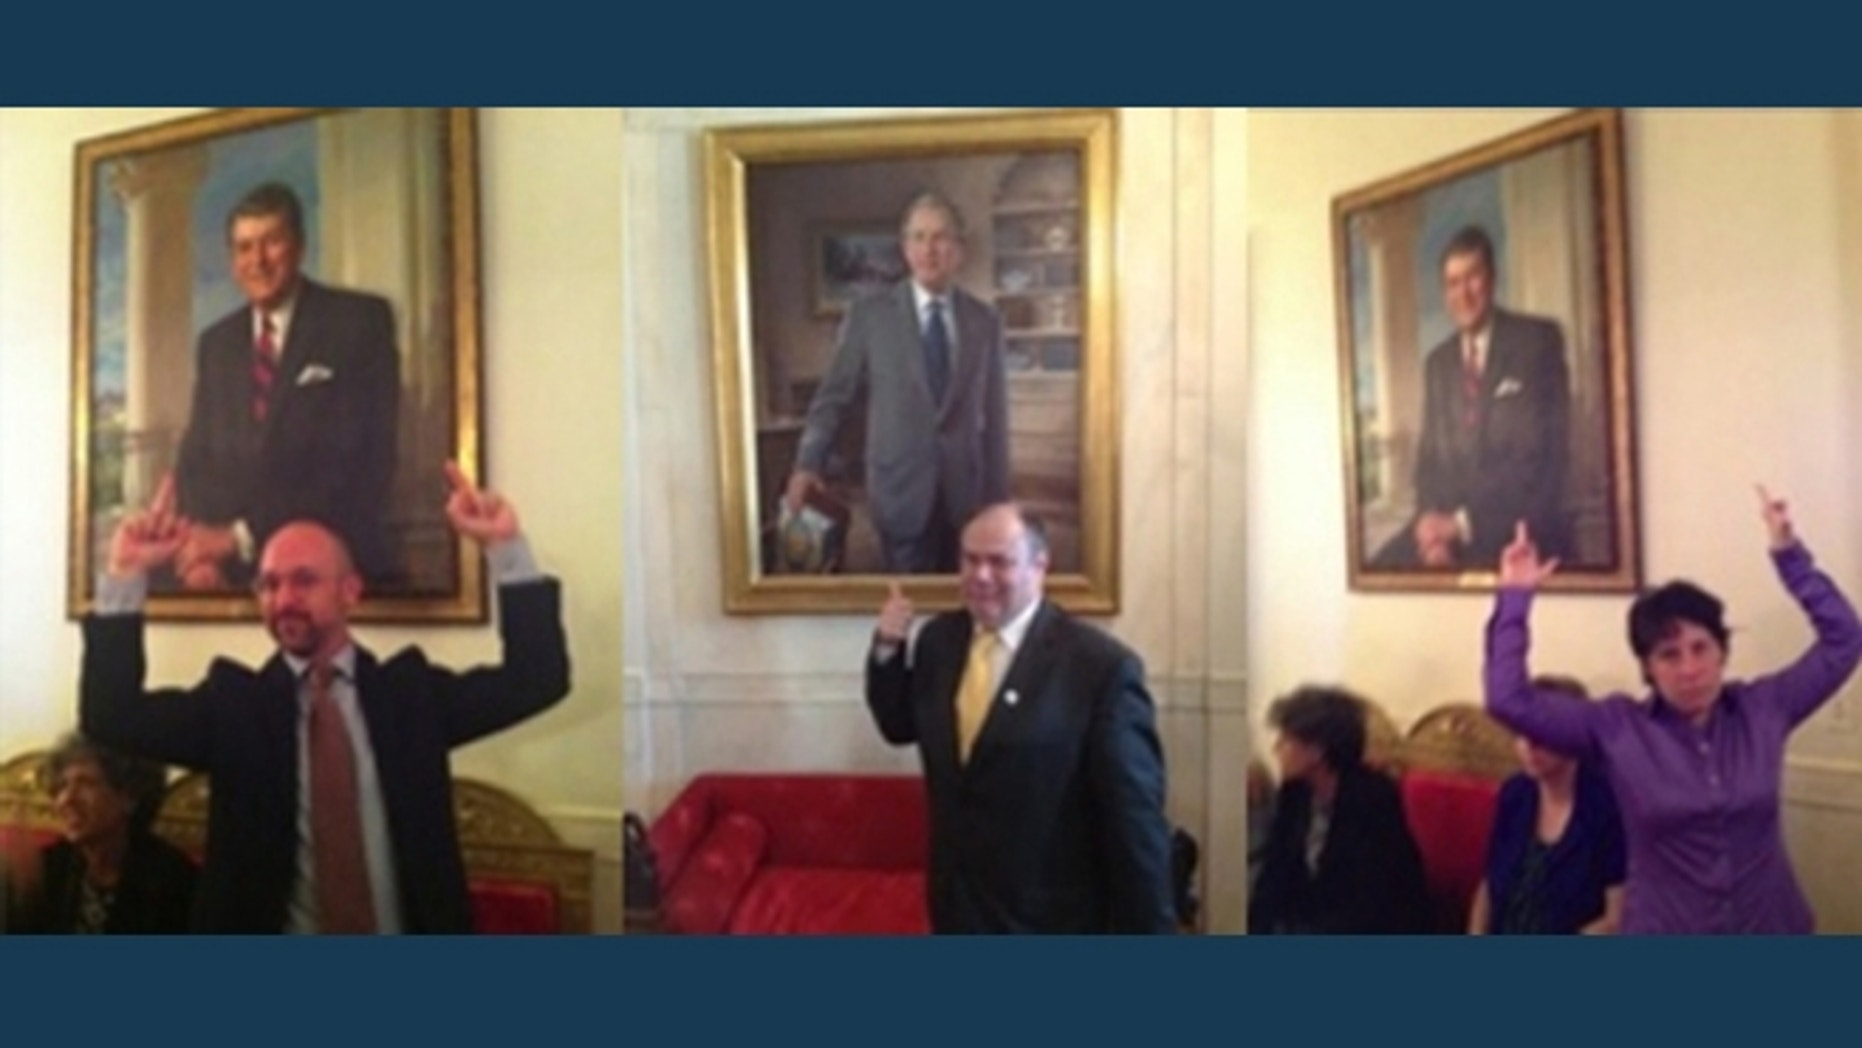 White House guests Zoe Strauss, right, and Matty Hart, left, are seen flipping off a portrait of Ronald Reagan on June 15, 2012. Philadelphia publisher Mark Segal, center, is shown giving a thumbs-up.